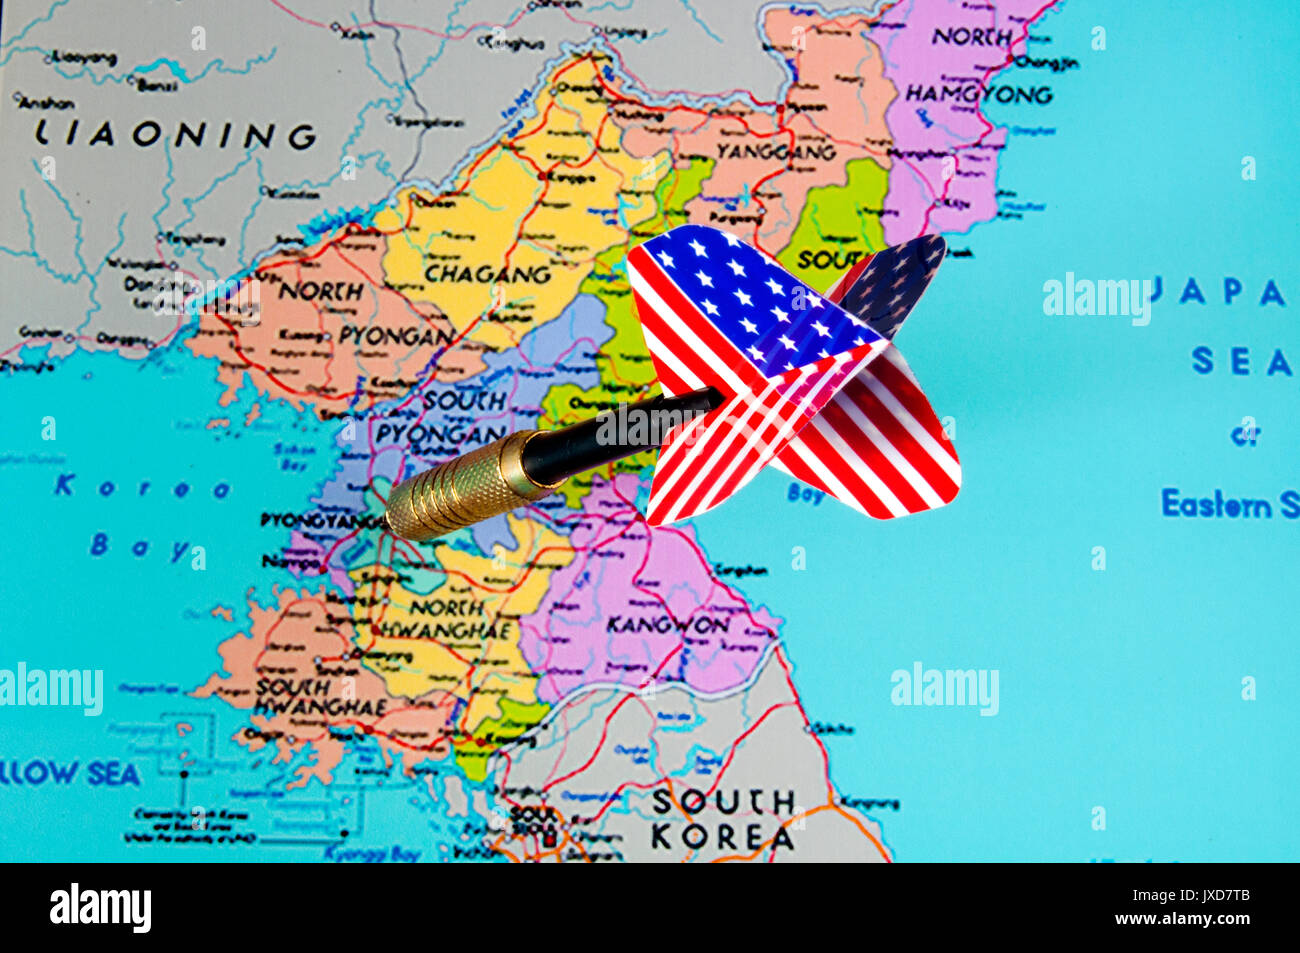 Dart with american flag motif striking pyongyang on map of north dart with american flag motif striking pyongyang on map of north korea sciox Choice Image